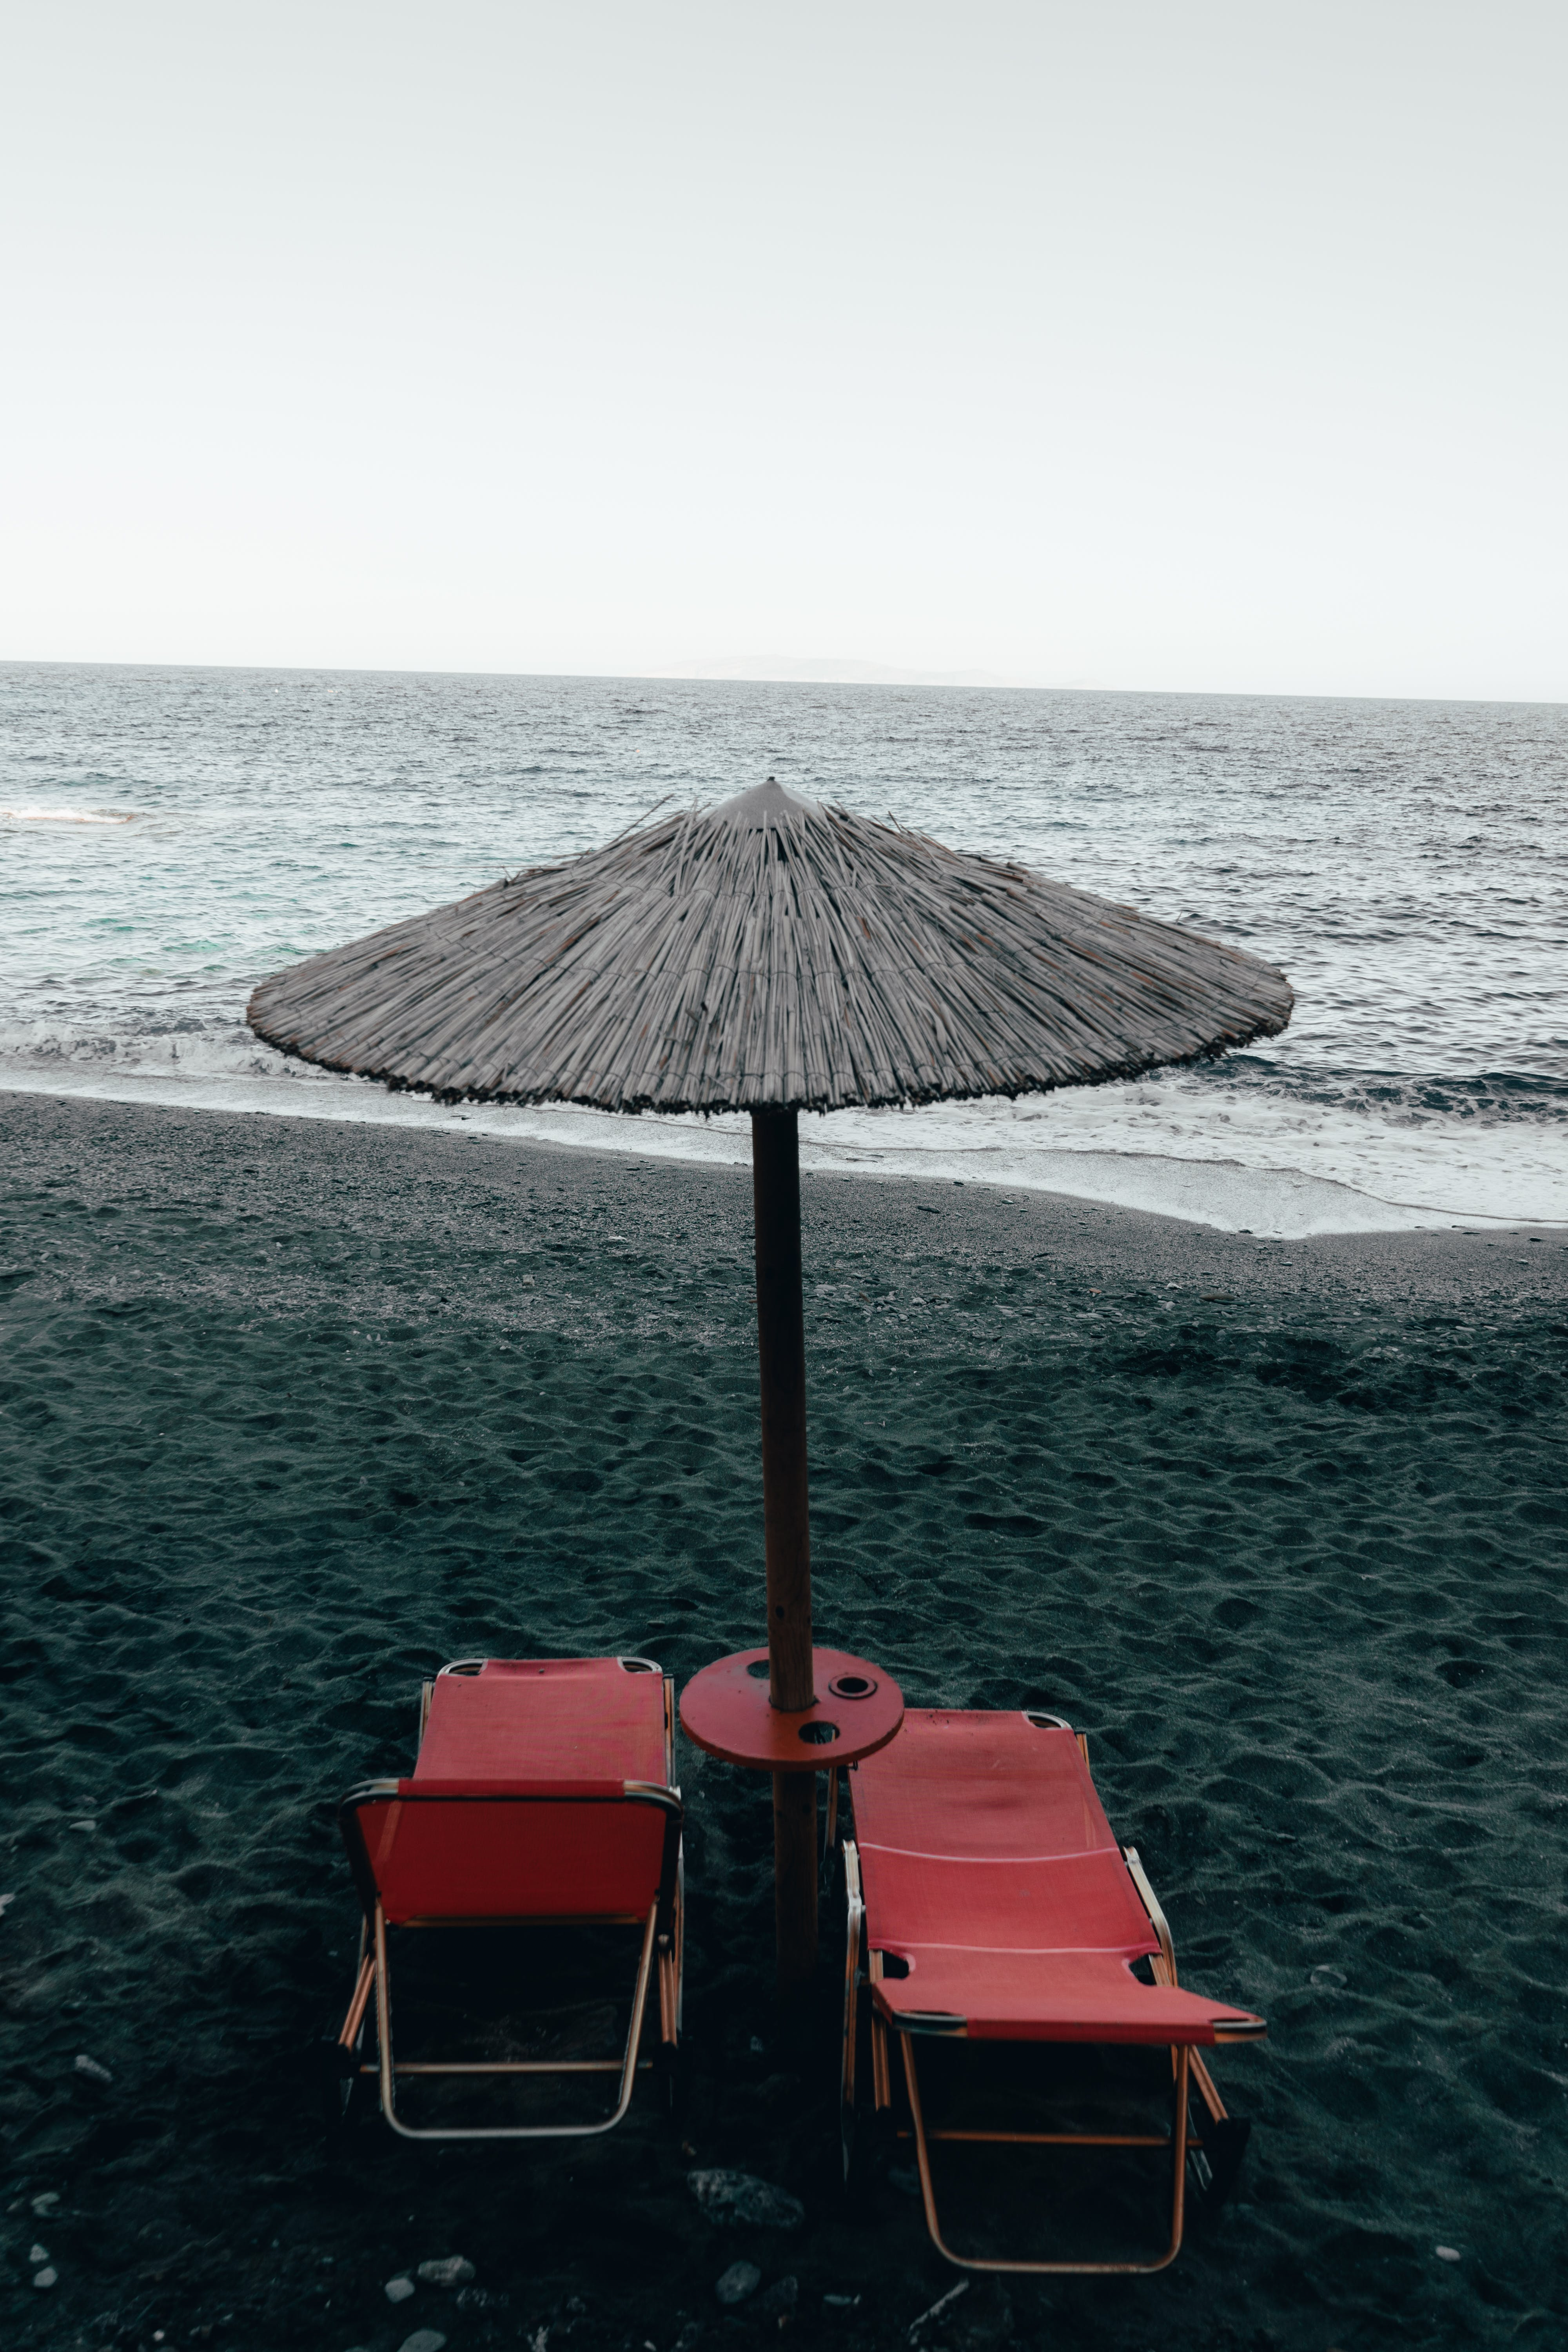 Two Red Pool Chairs Under Patio Umbrella Near Shore